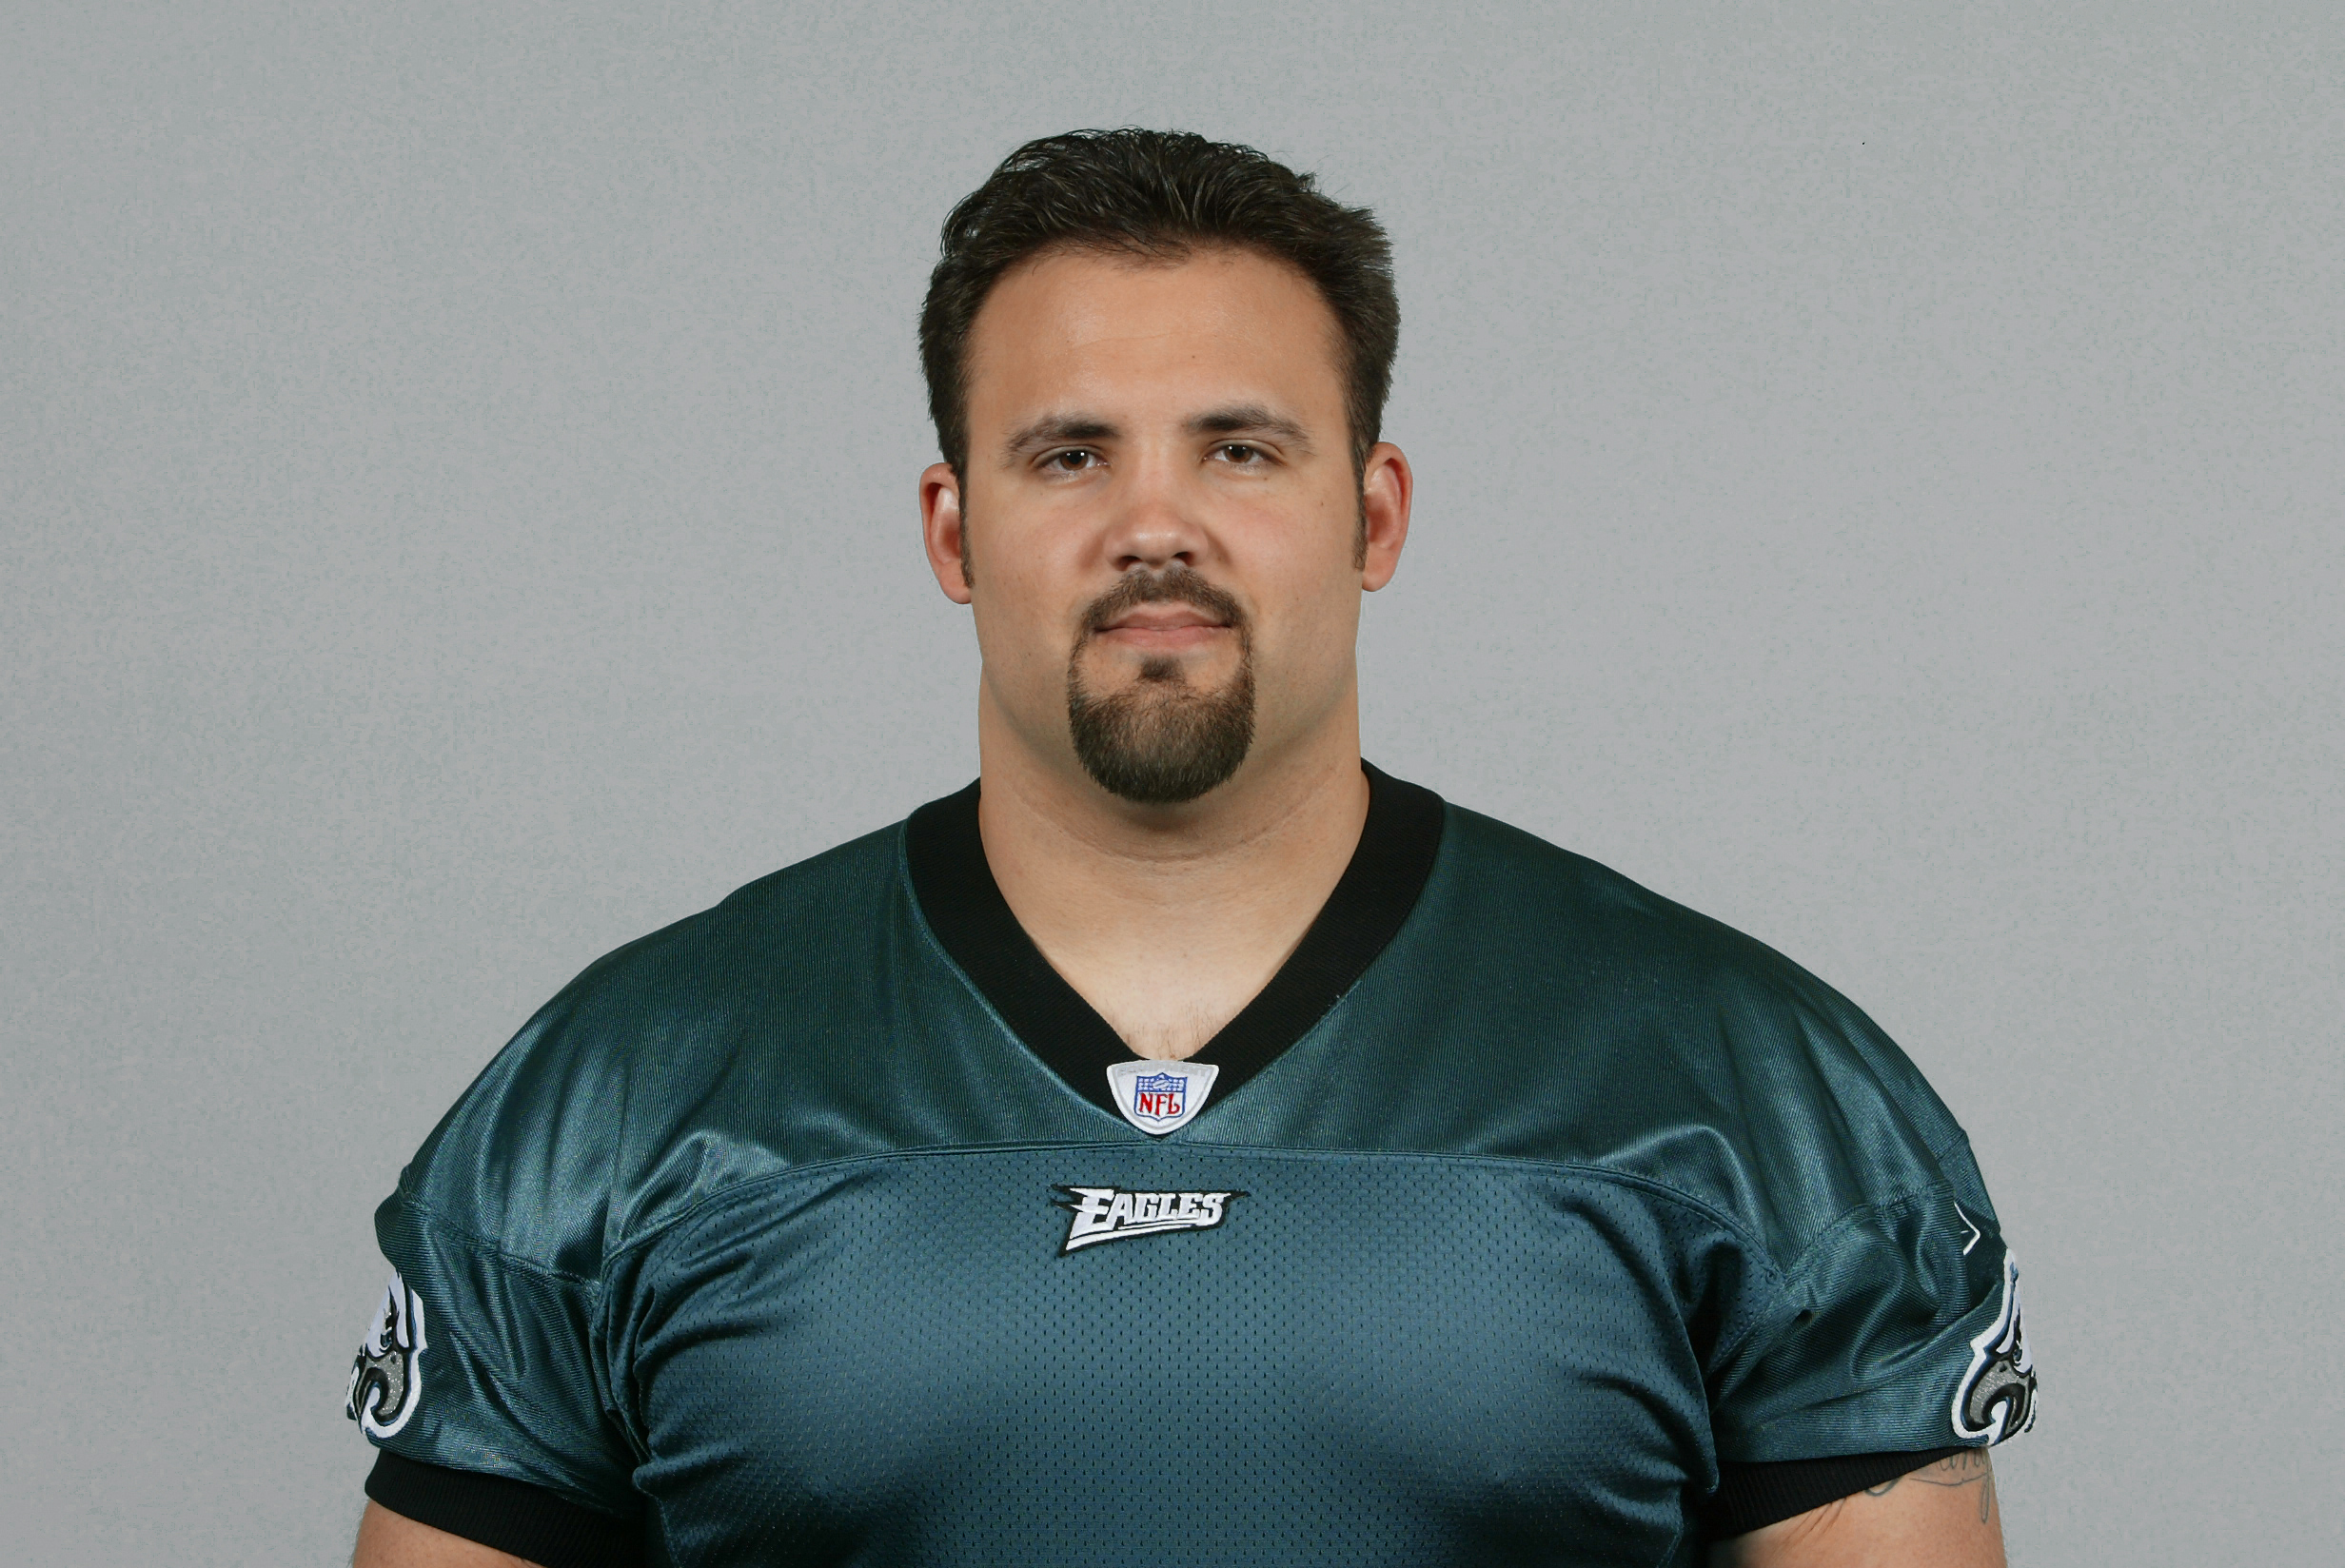 PHILADELPHIA - 2005:  Dominic Furio of the Philadelphia Eagles poses for his 2005 NFL headshot at photo day in Philadelphia, Pennsylvania.  (Photo by Getty Images)